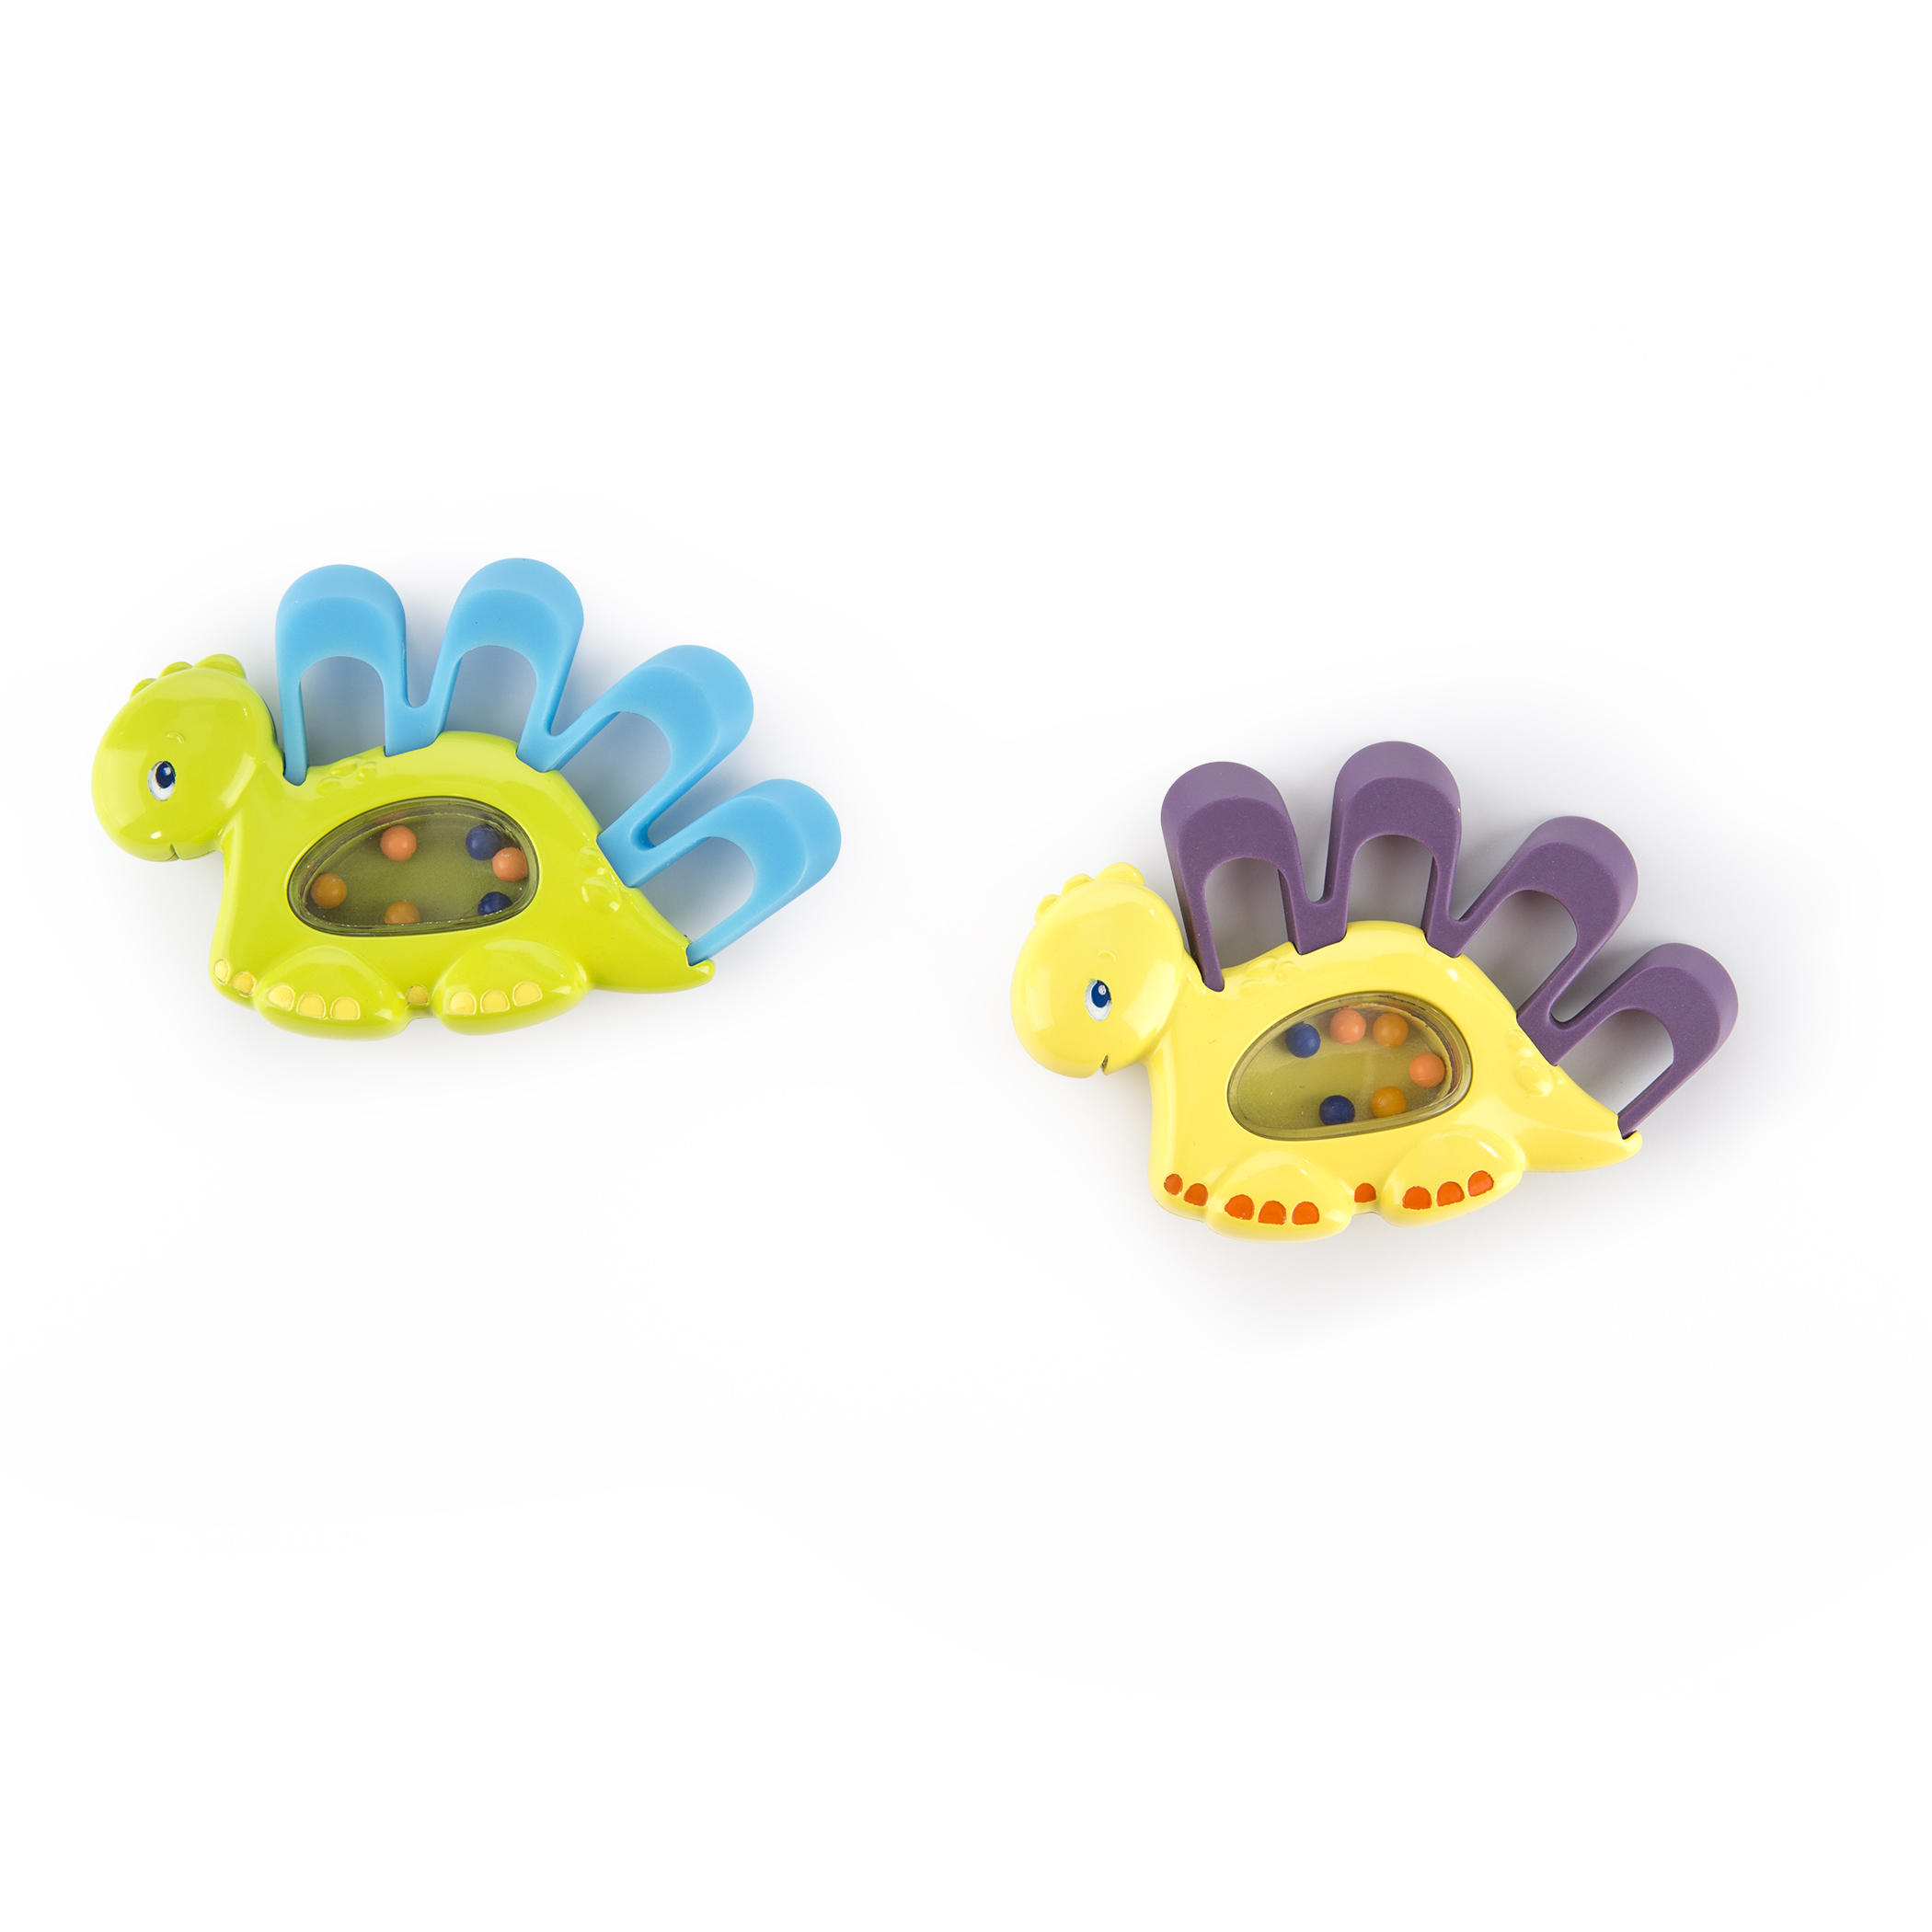 Teethe-a-saurus™ Teething Toy